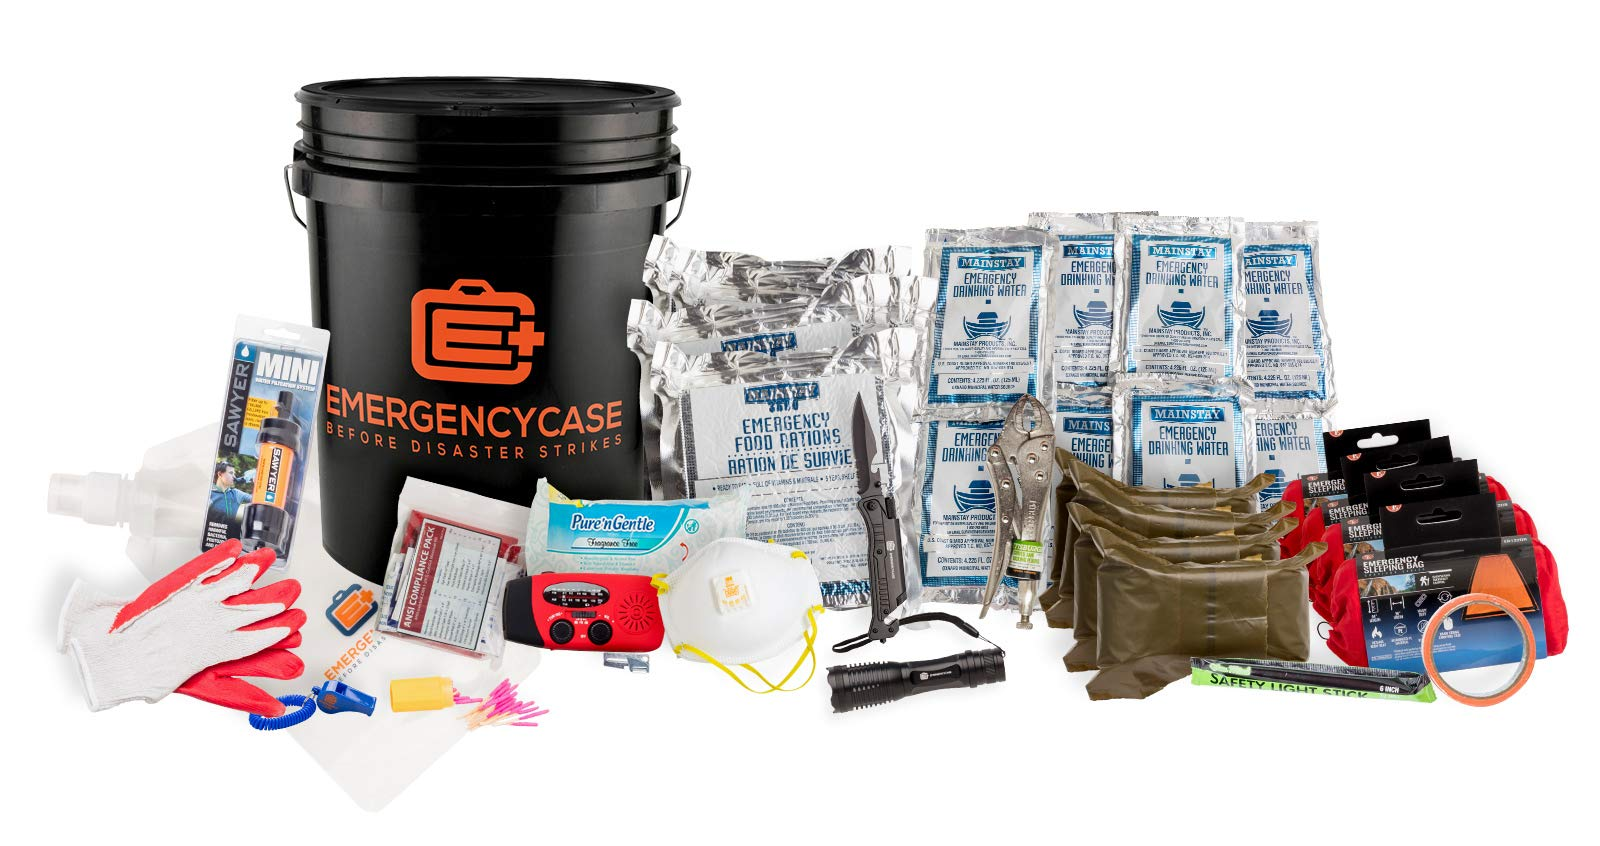 Emergency Case - Family Black Budget Bucket Emergency Kit - 4 Person 3 Days w/Food, Water, Medical and Sleeping Bags